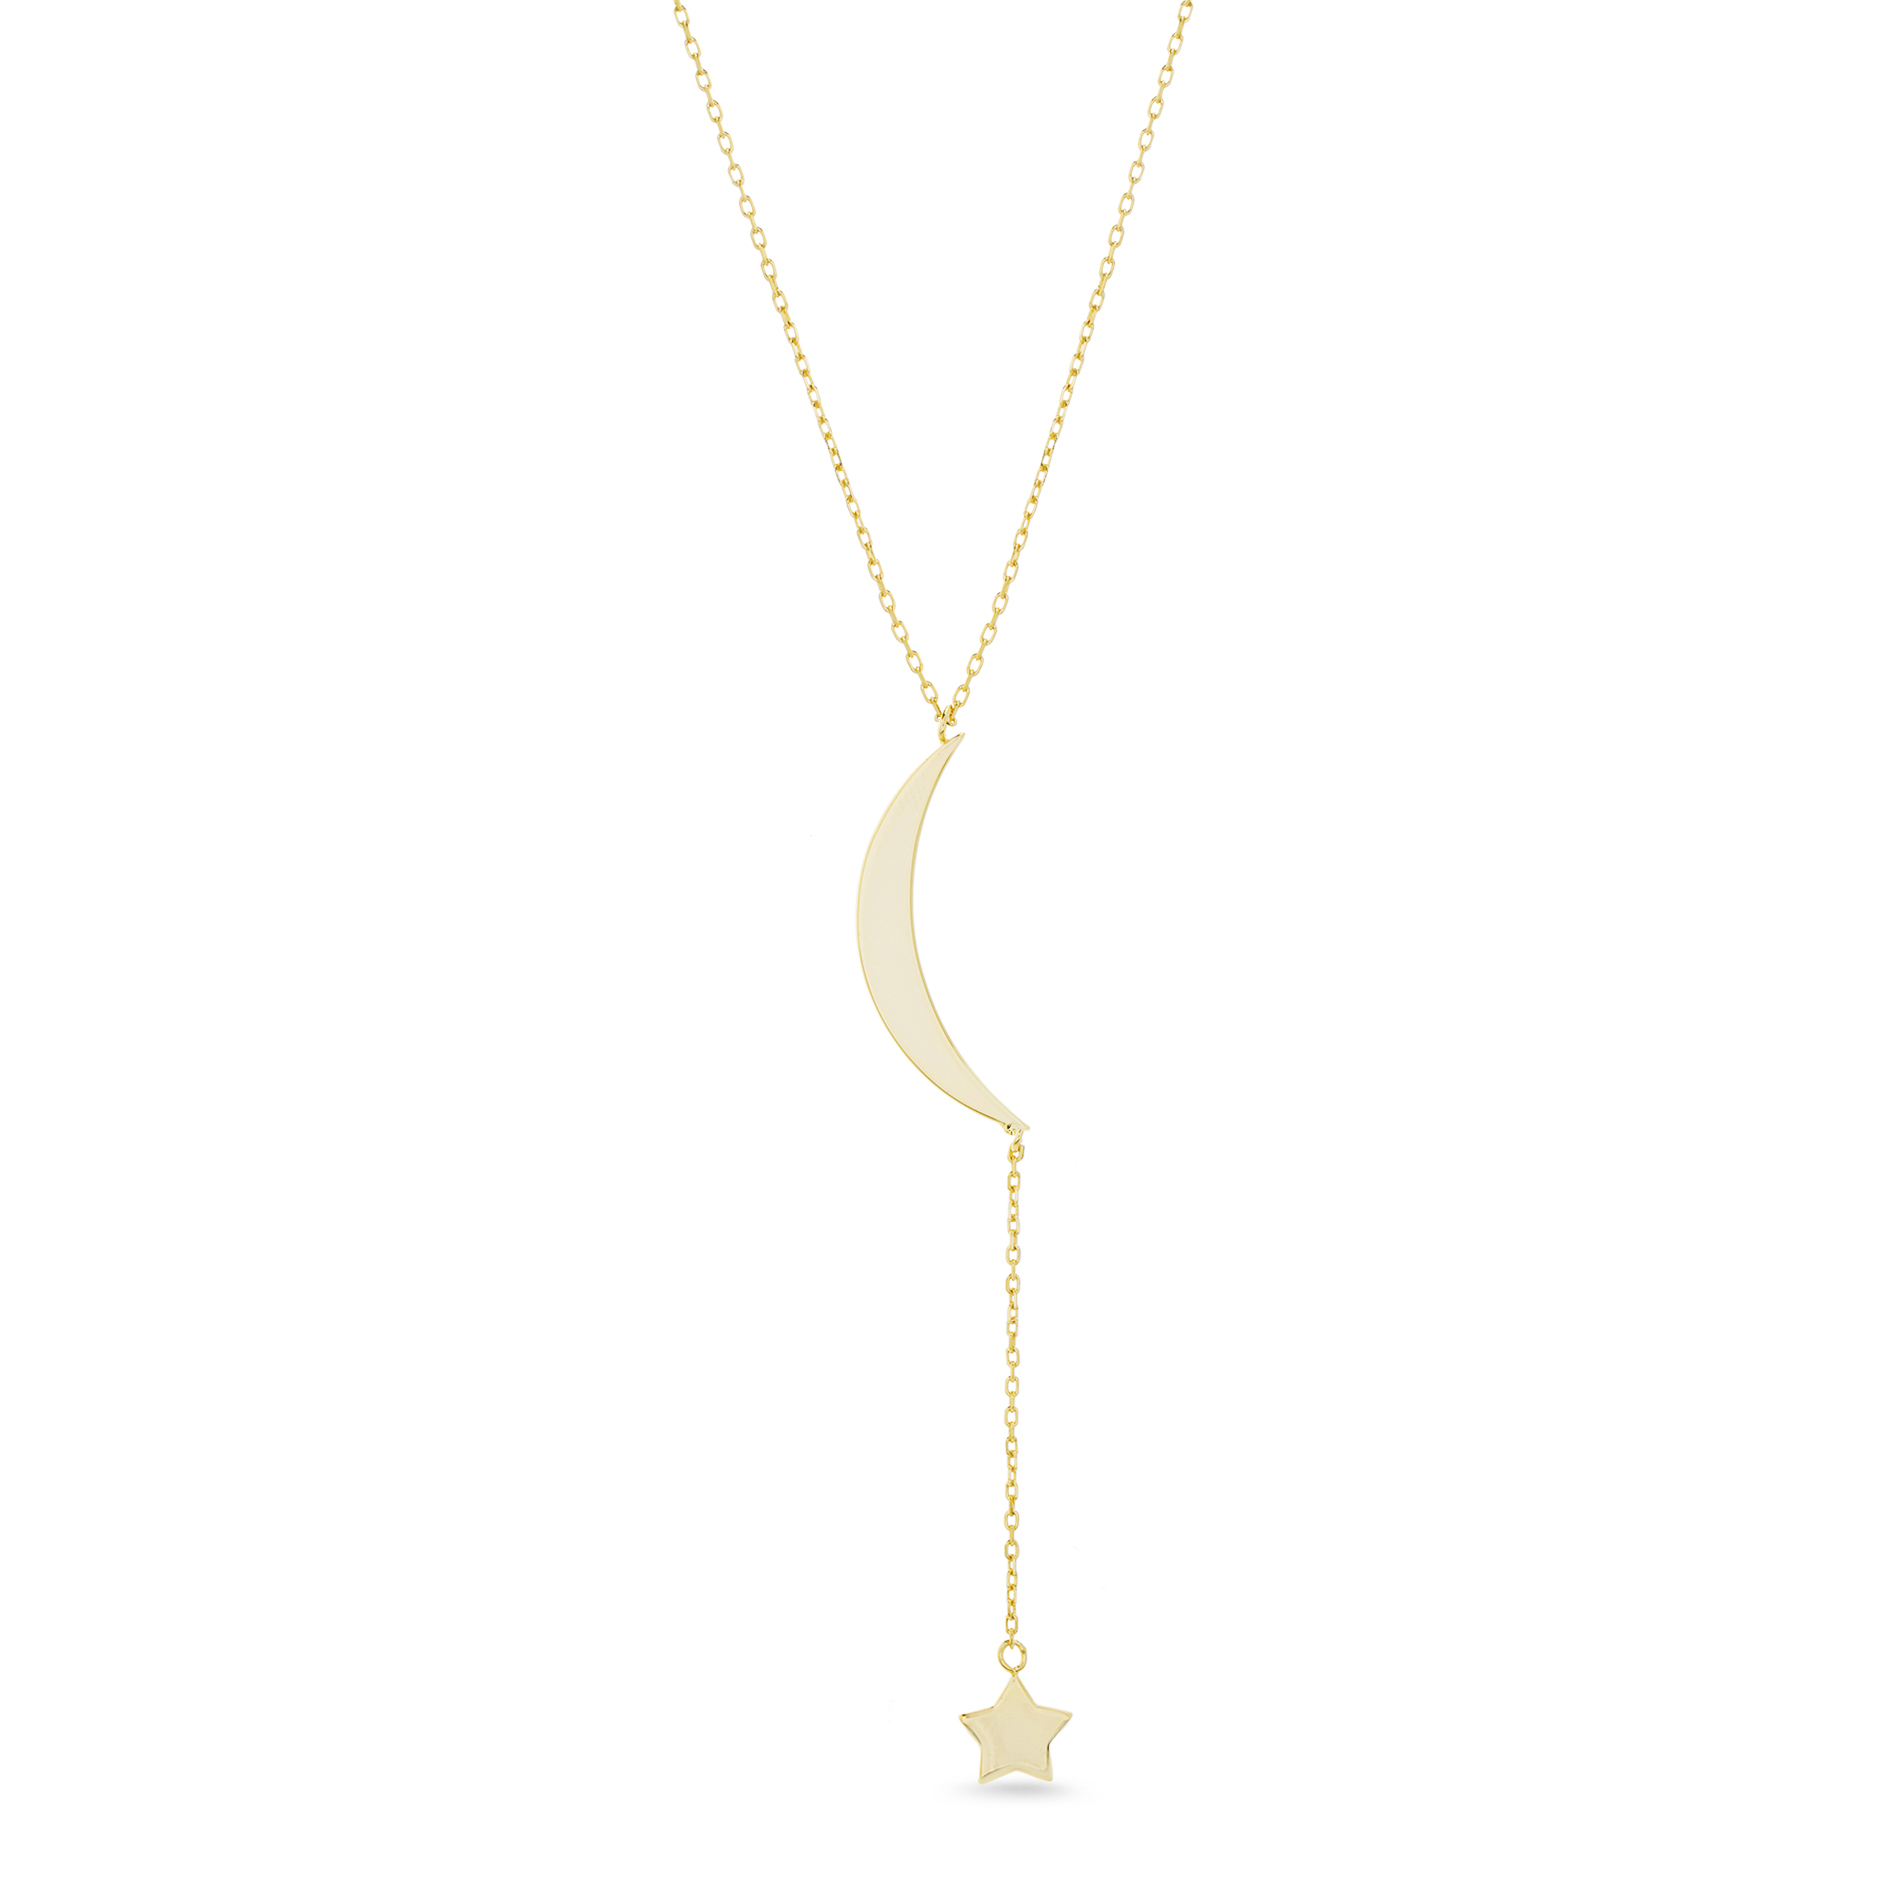 Bliss Polished Moon And Star Drop Necklace In Yellow Gold Plated Sterling Silver Throughout 2019 Polished Moon & Star Pendant Necklaces (View 7 of 25)